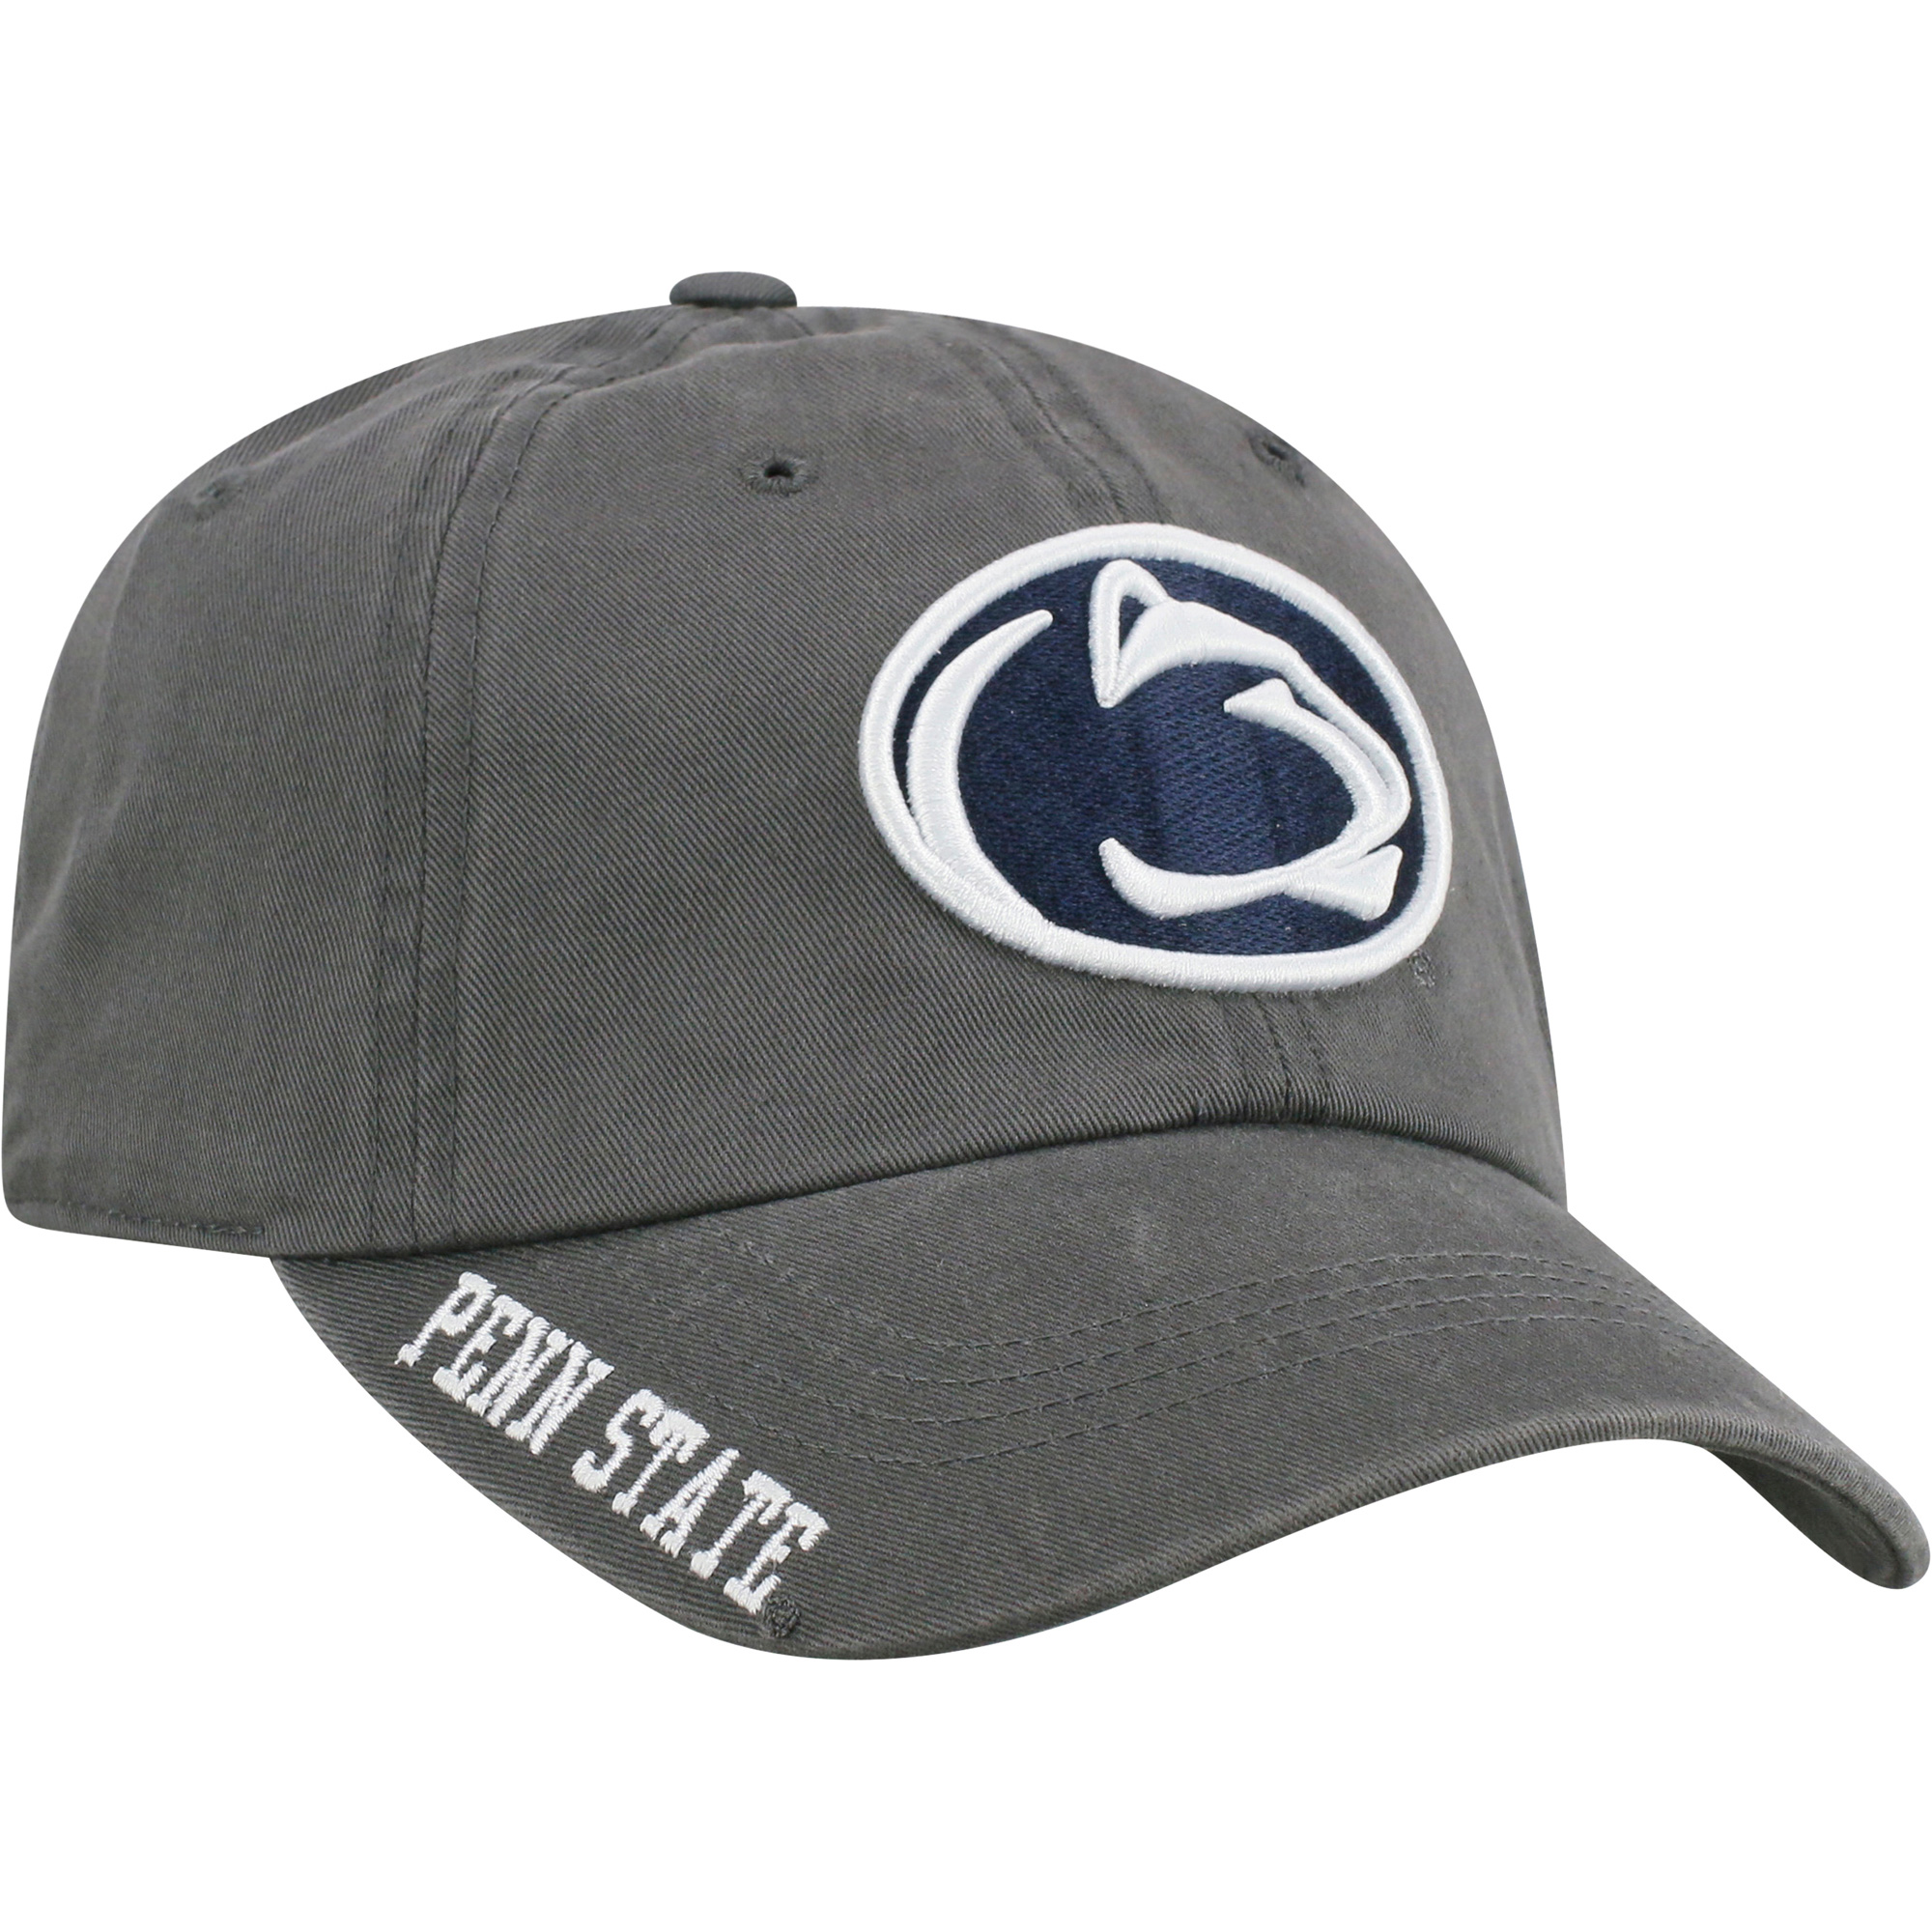 Men's Russell Charcoal Penn State Nittany Lions Washed Adjustable Hat - OSFA